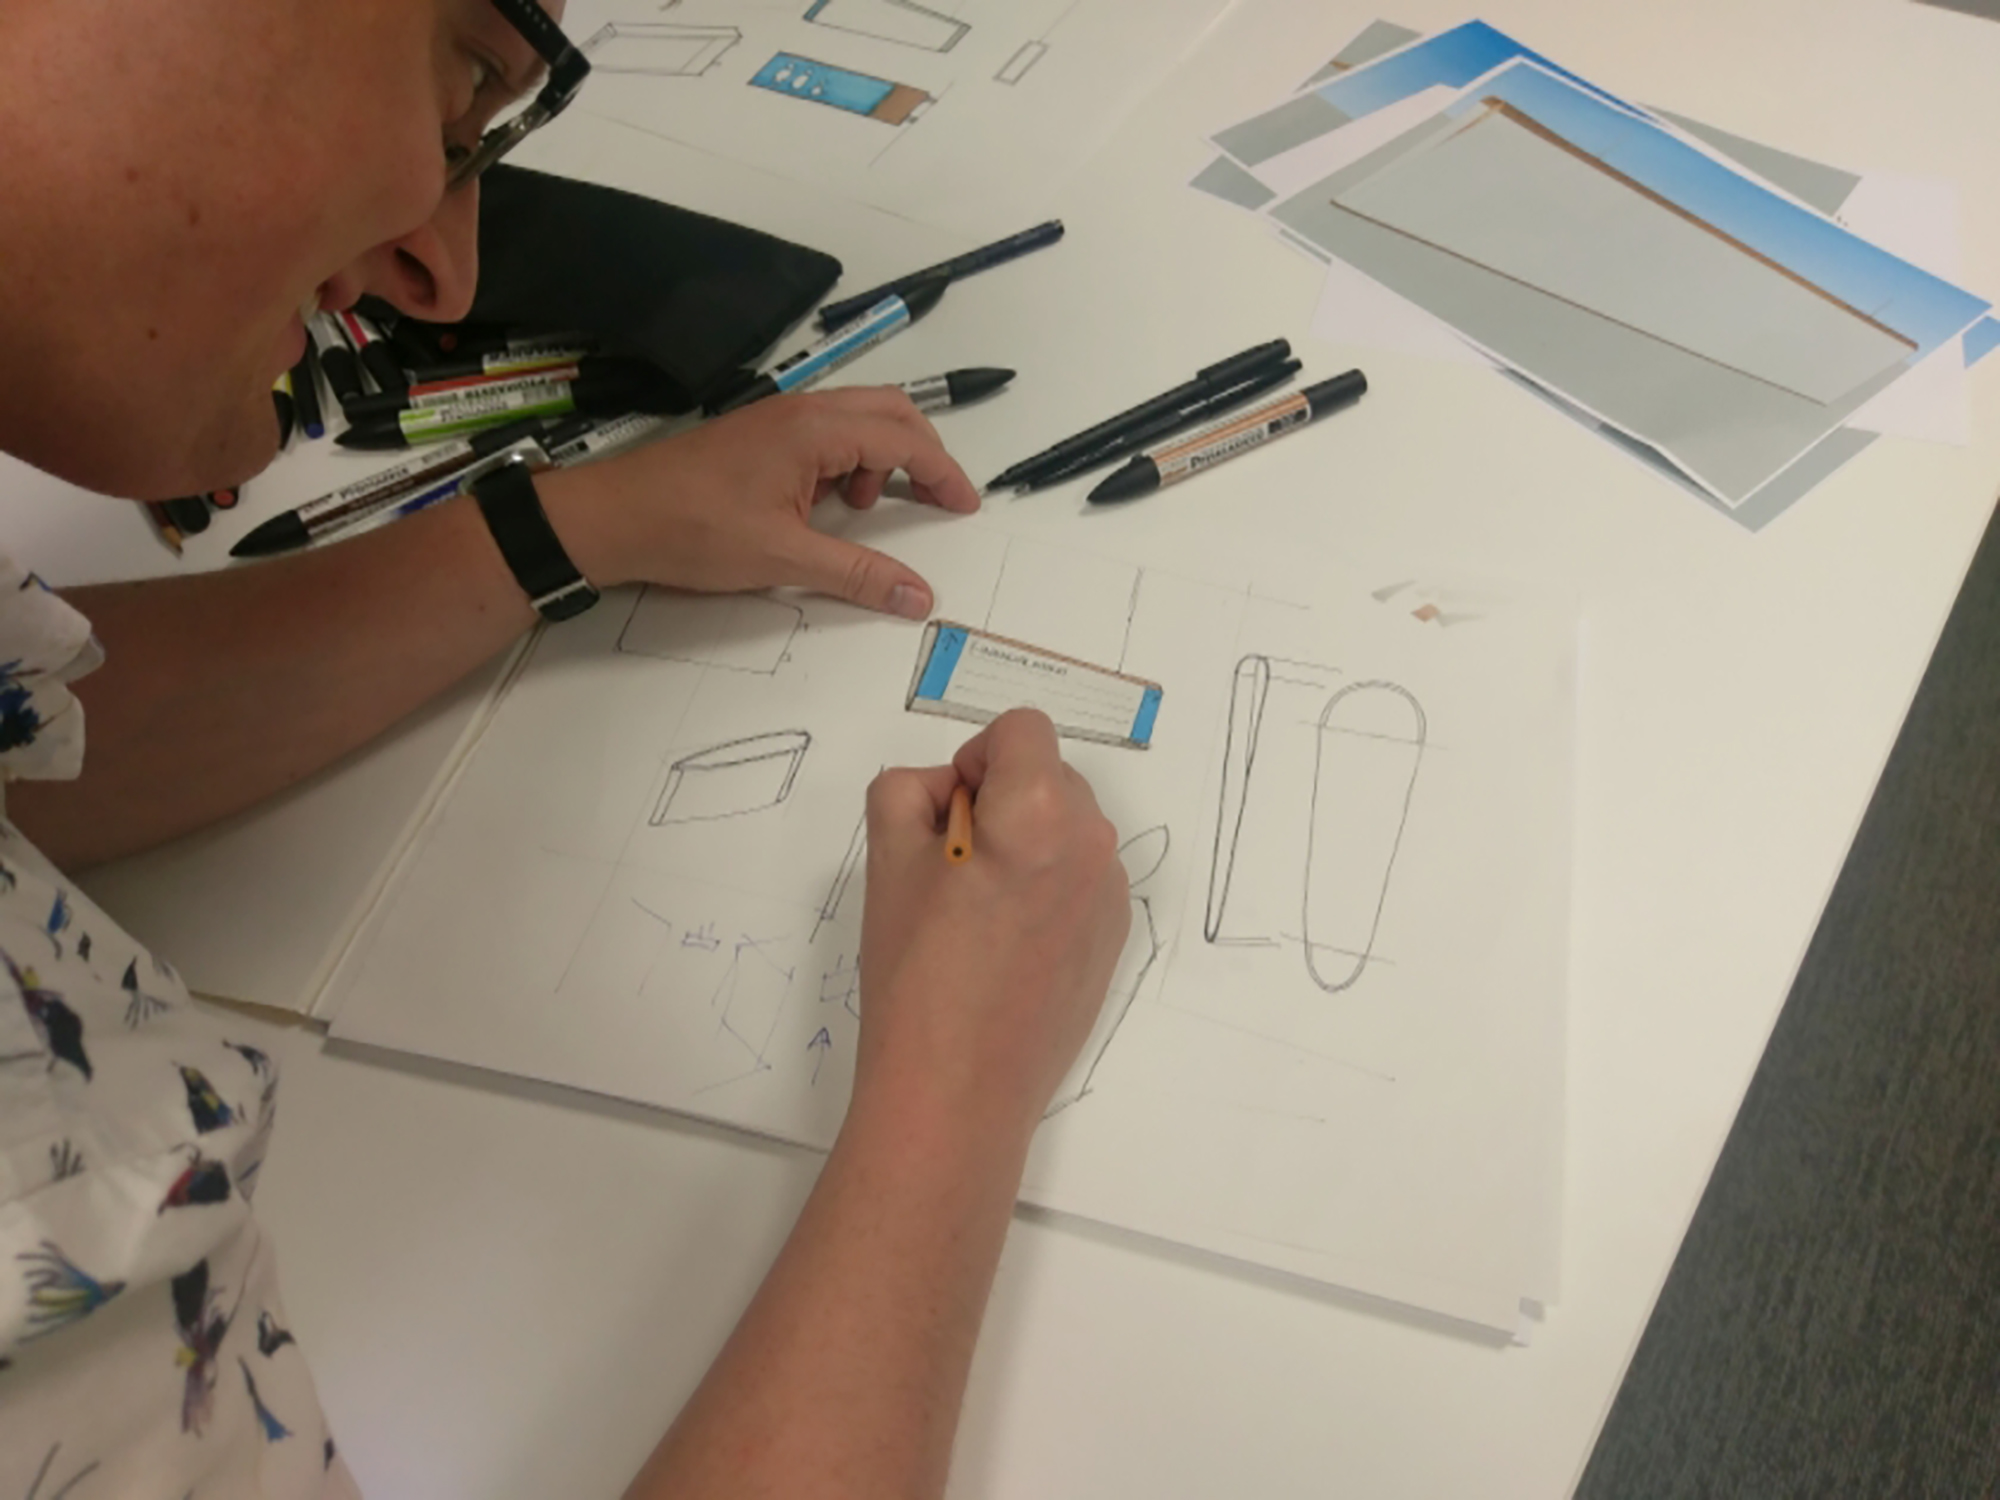 Sketches to develop the signage product in the early stages of the project